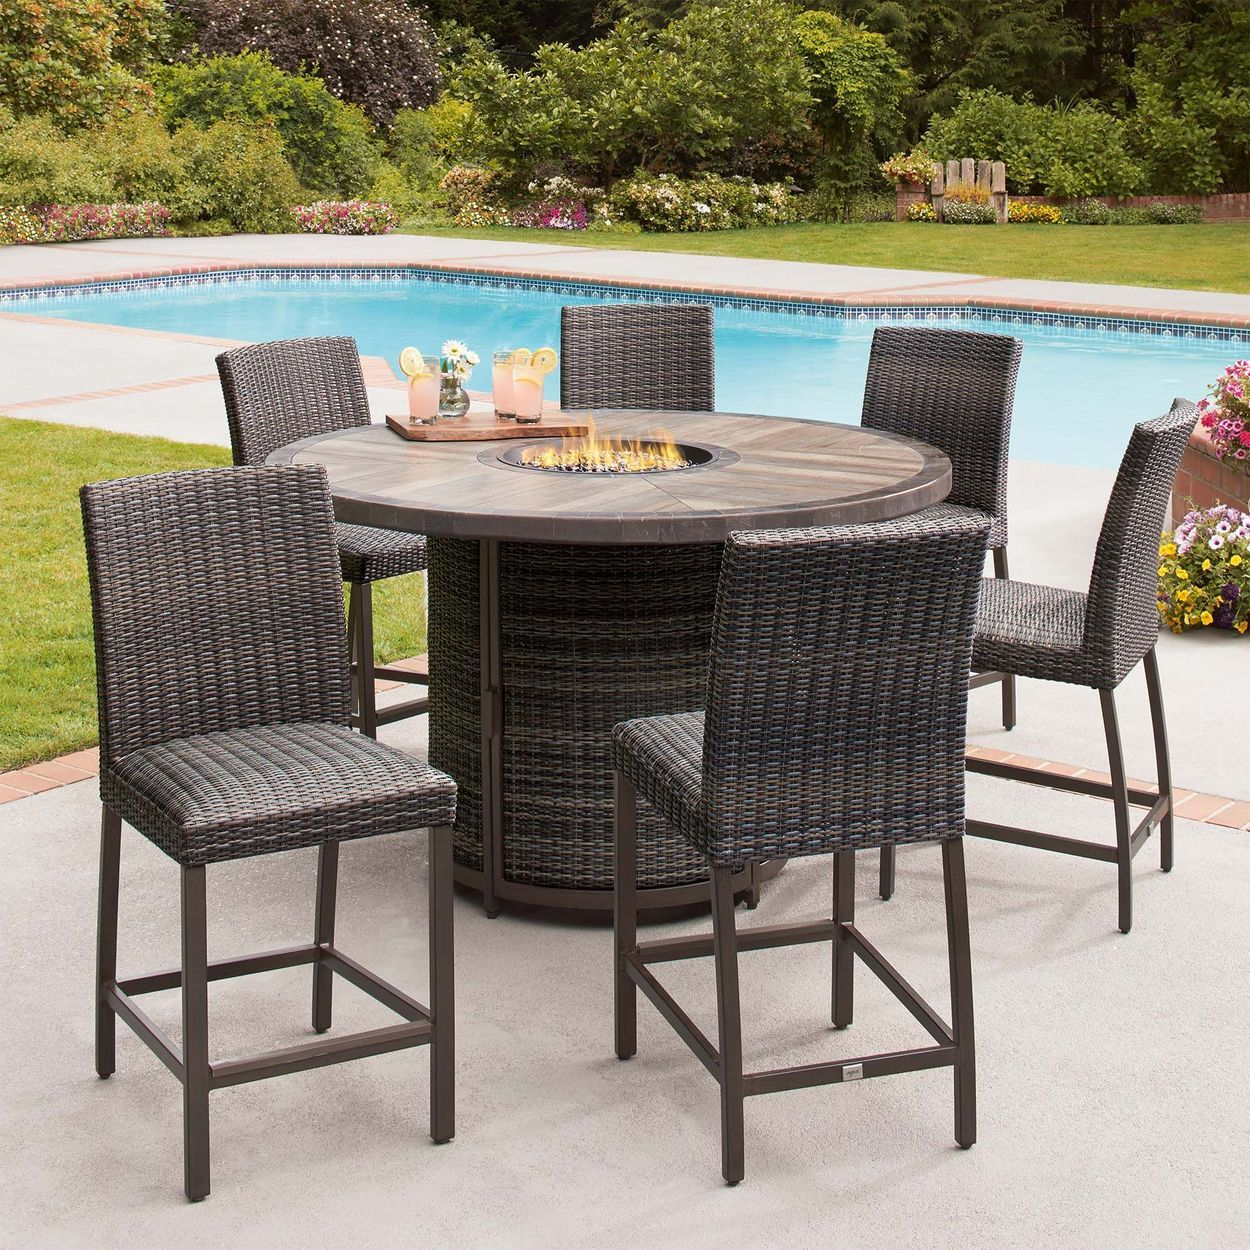 St Louis 7 Piece High Dining Set With Fire Costco Patio